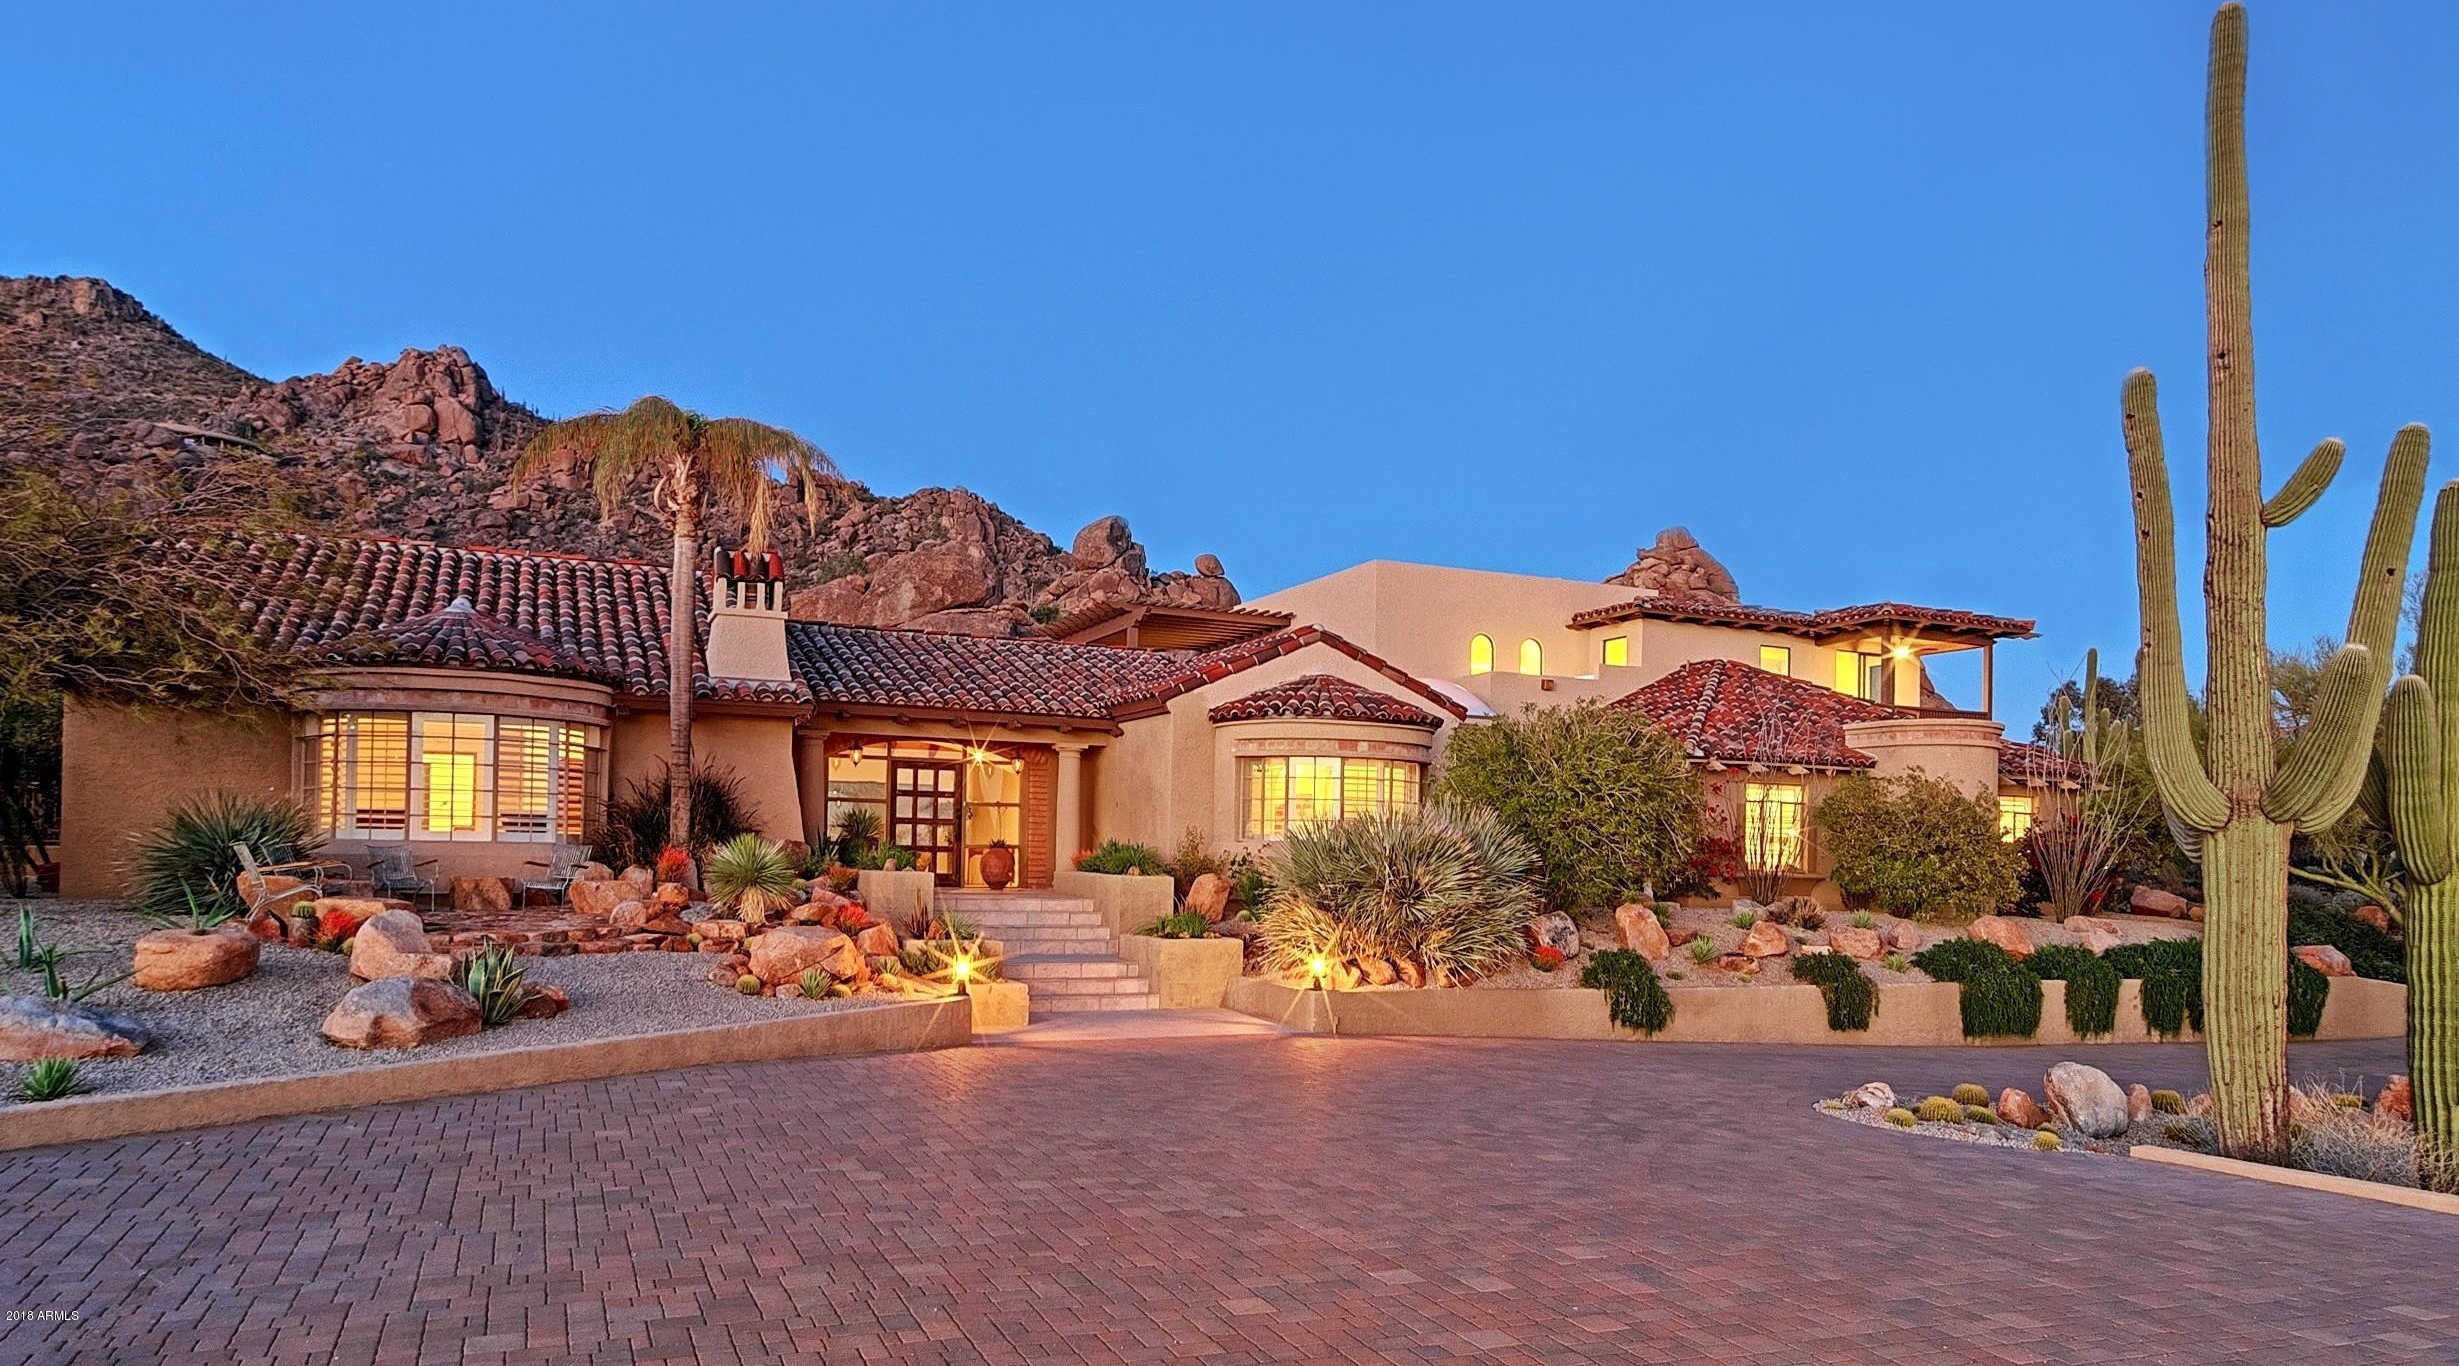 $1,595,000 - 4Br/5Ba - Home for Sale in Carefree Grand View Estates, Carefree